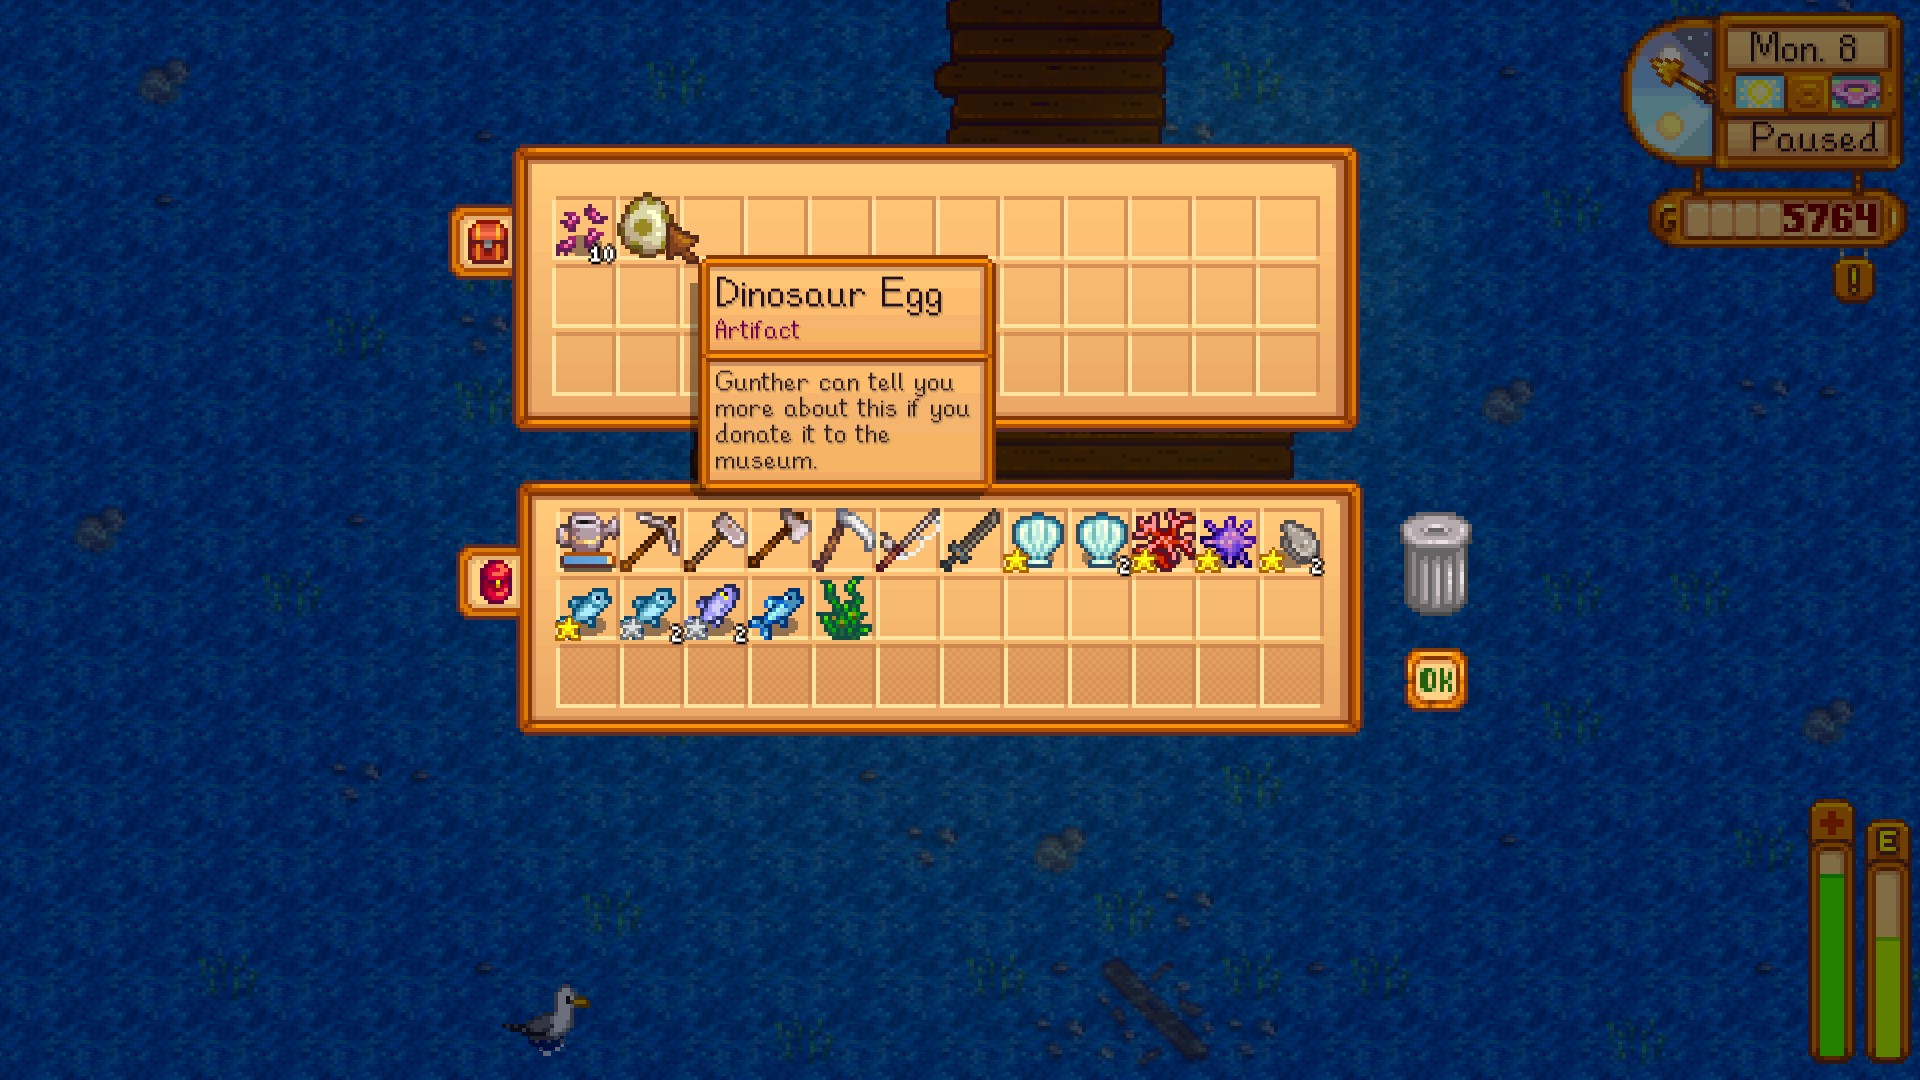 Dinosaur Egg Data Stardew Valley General Discussions Spawning items in stardew valley is not done via commands, but rather through a cheat in which you must set your character's name, or the name of an animal, to the item code of the item you wish to spawn surrounded by  and . steam community